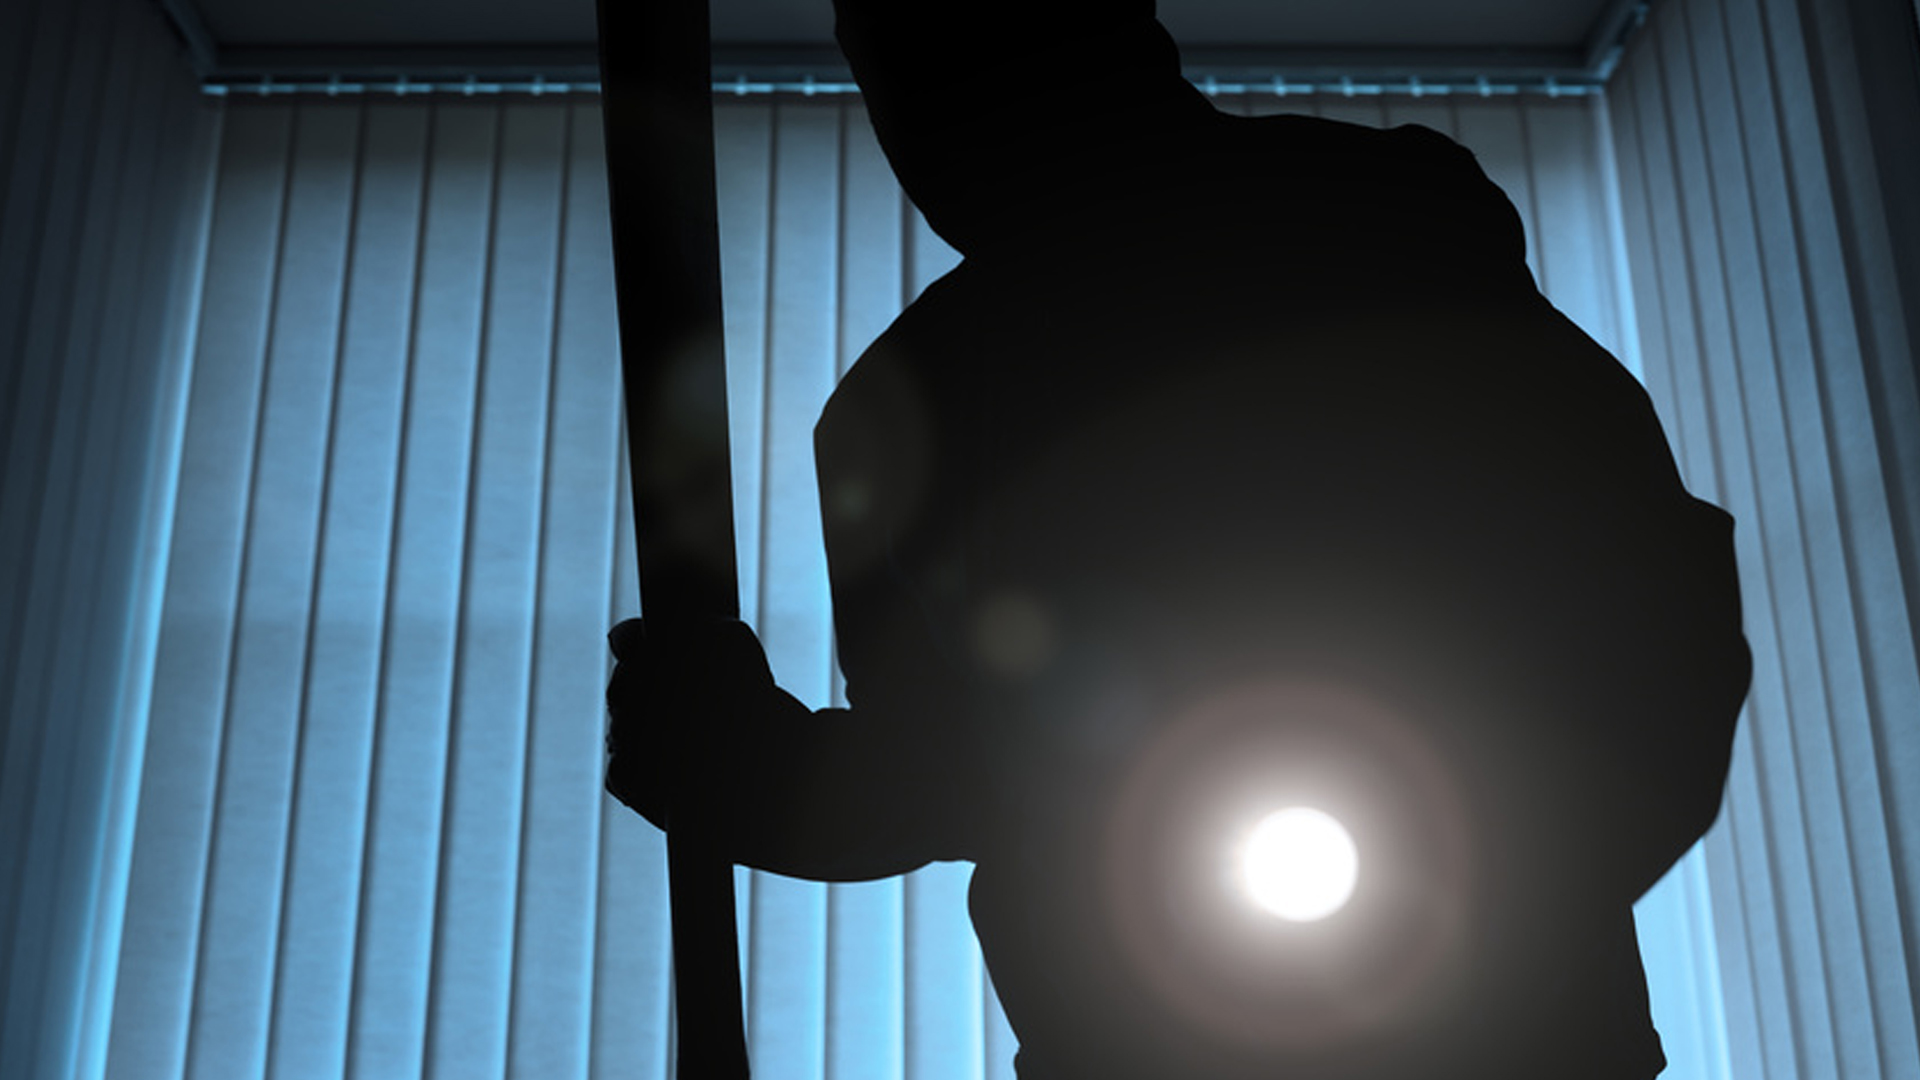 4 WAYS TO KEEP YOUR HOME SAFE DURING LOAD SHEDDING